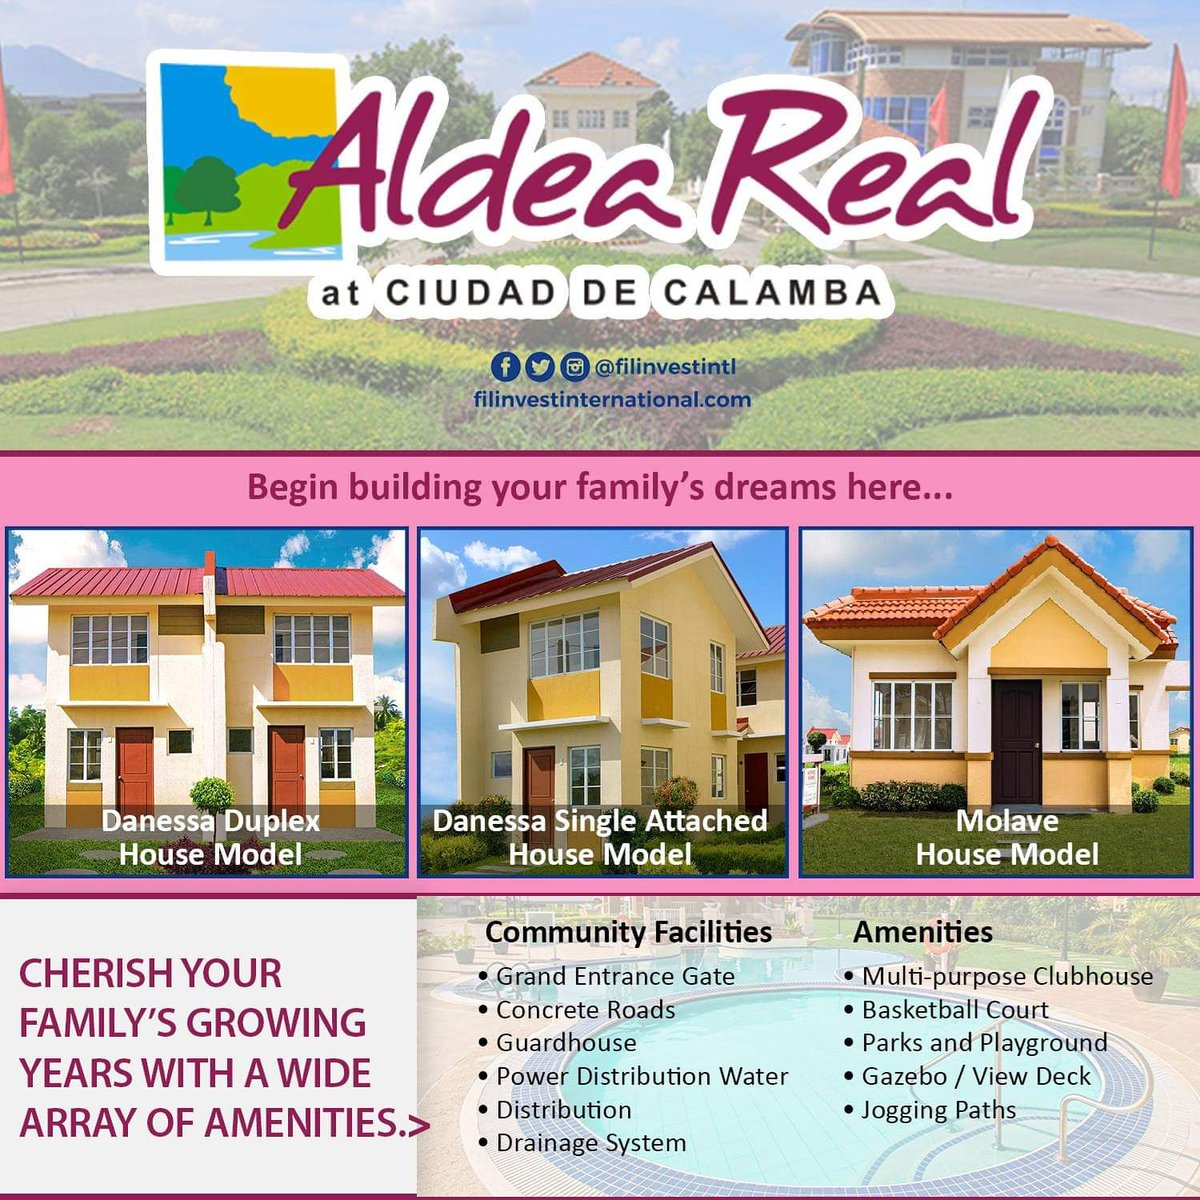 Hum to the natural beauty of the country side. At Aldea Real Filinvest, everything is nice and quiet.  For inquiries on Aldea Real, you may send us a message.  #Filinvest #FilinvestInternational #OFW #Investment #RealEstate #Opportunity #RentalIncome #ExtraIncome #Family https://t.co/cqtaT7xn9q